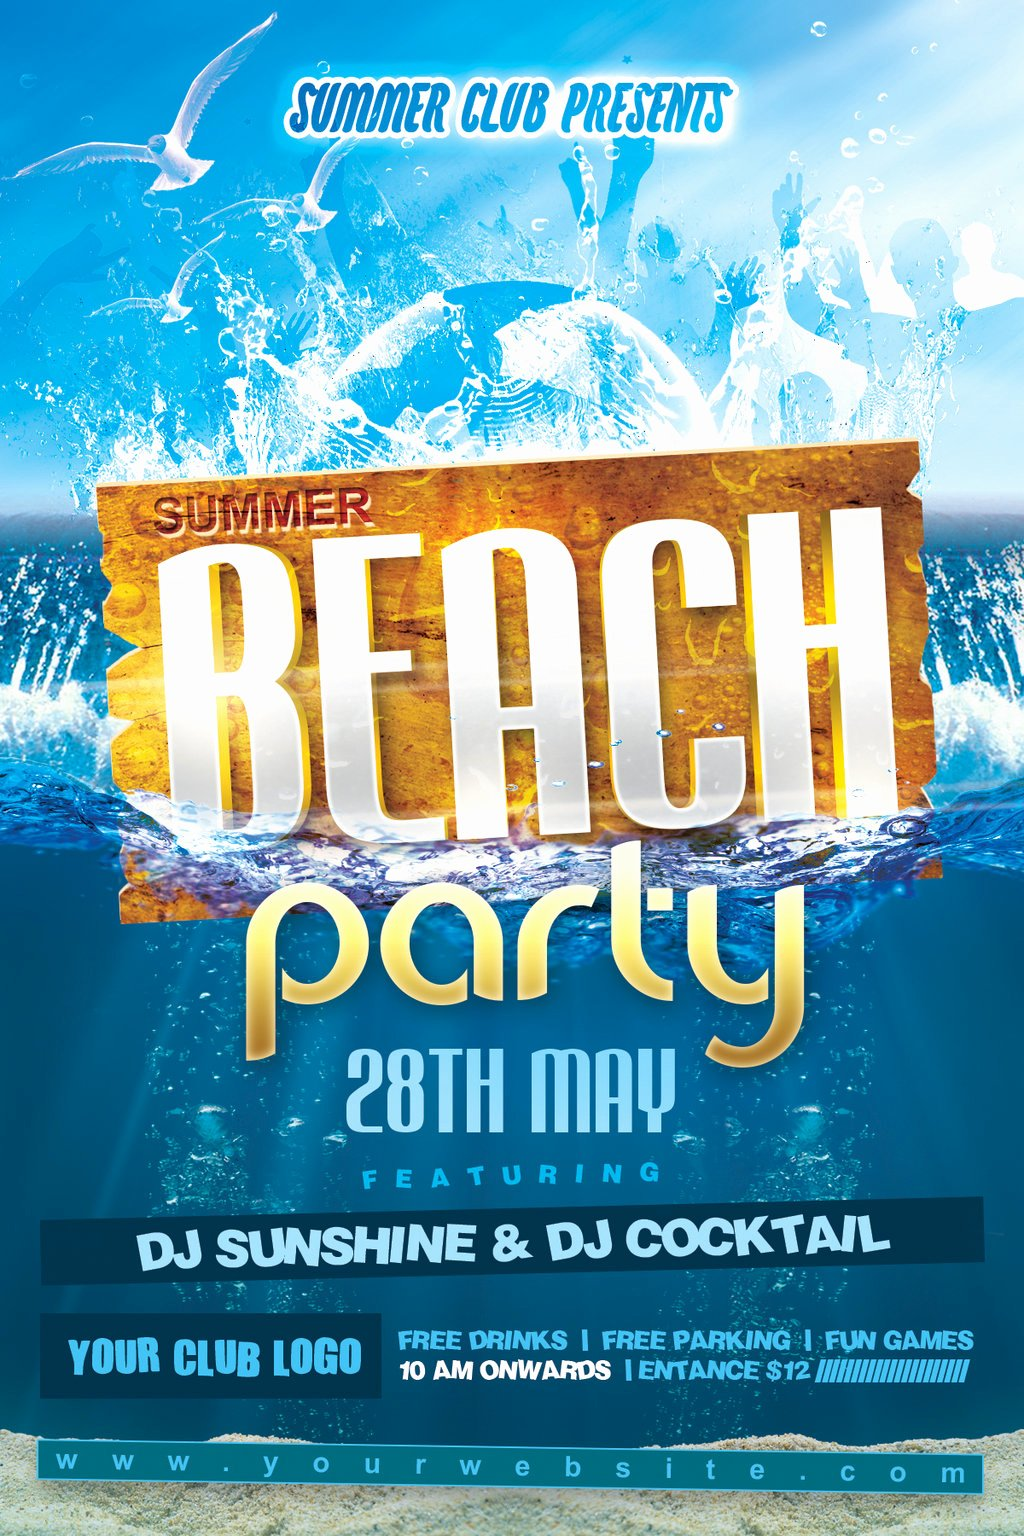 Summer Party Flyer Template Fresh Summer Beach Party Flyer by Dilanr On Deviantart